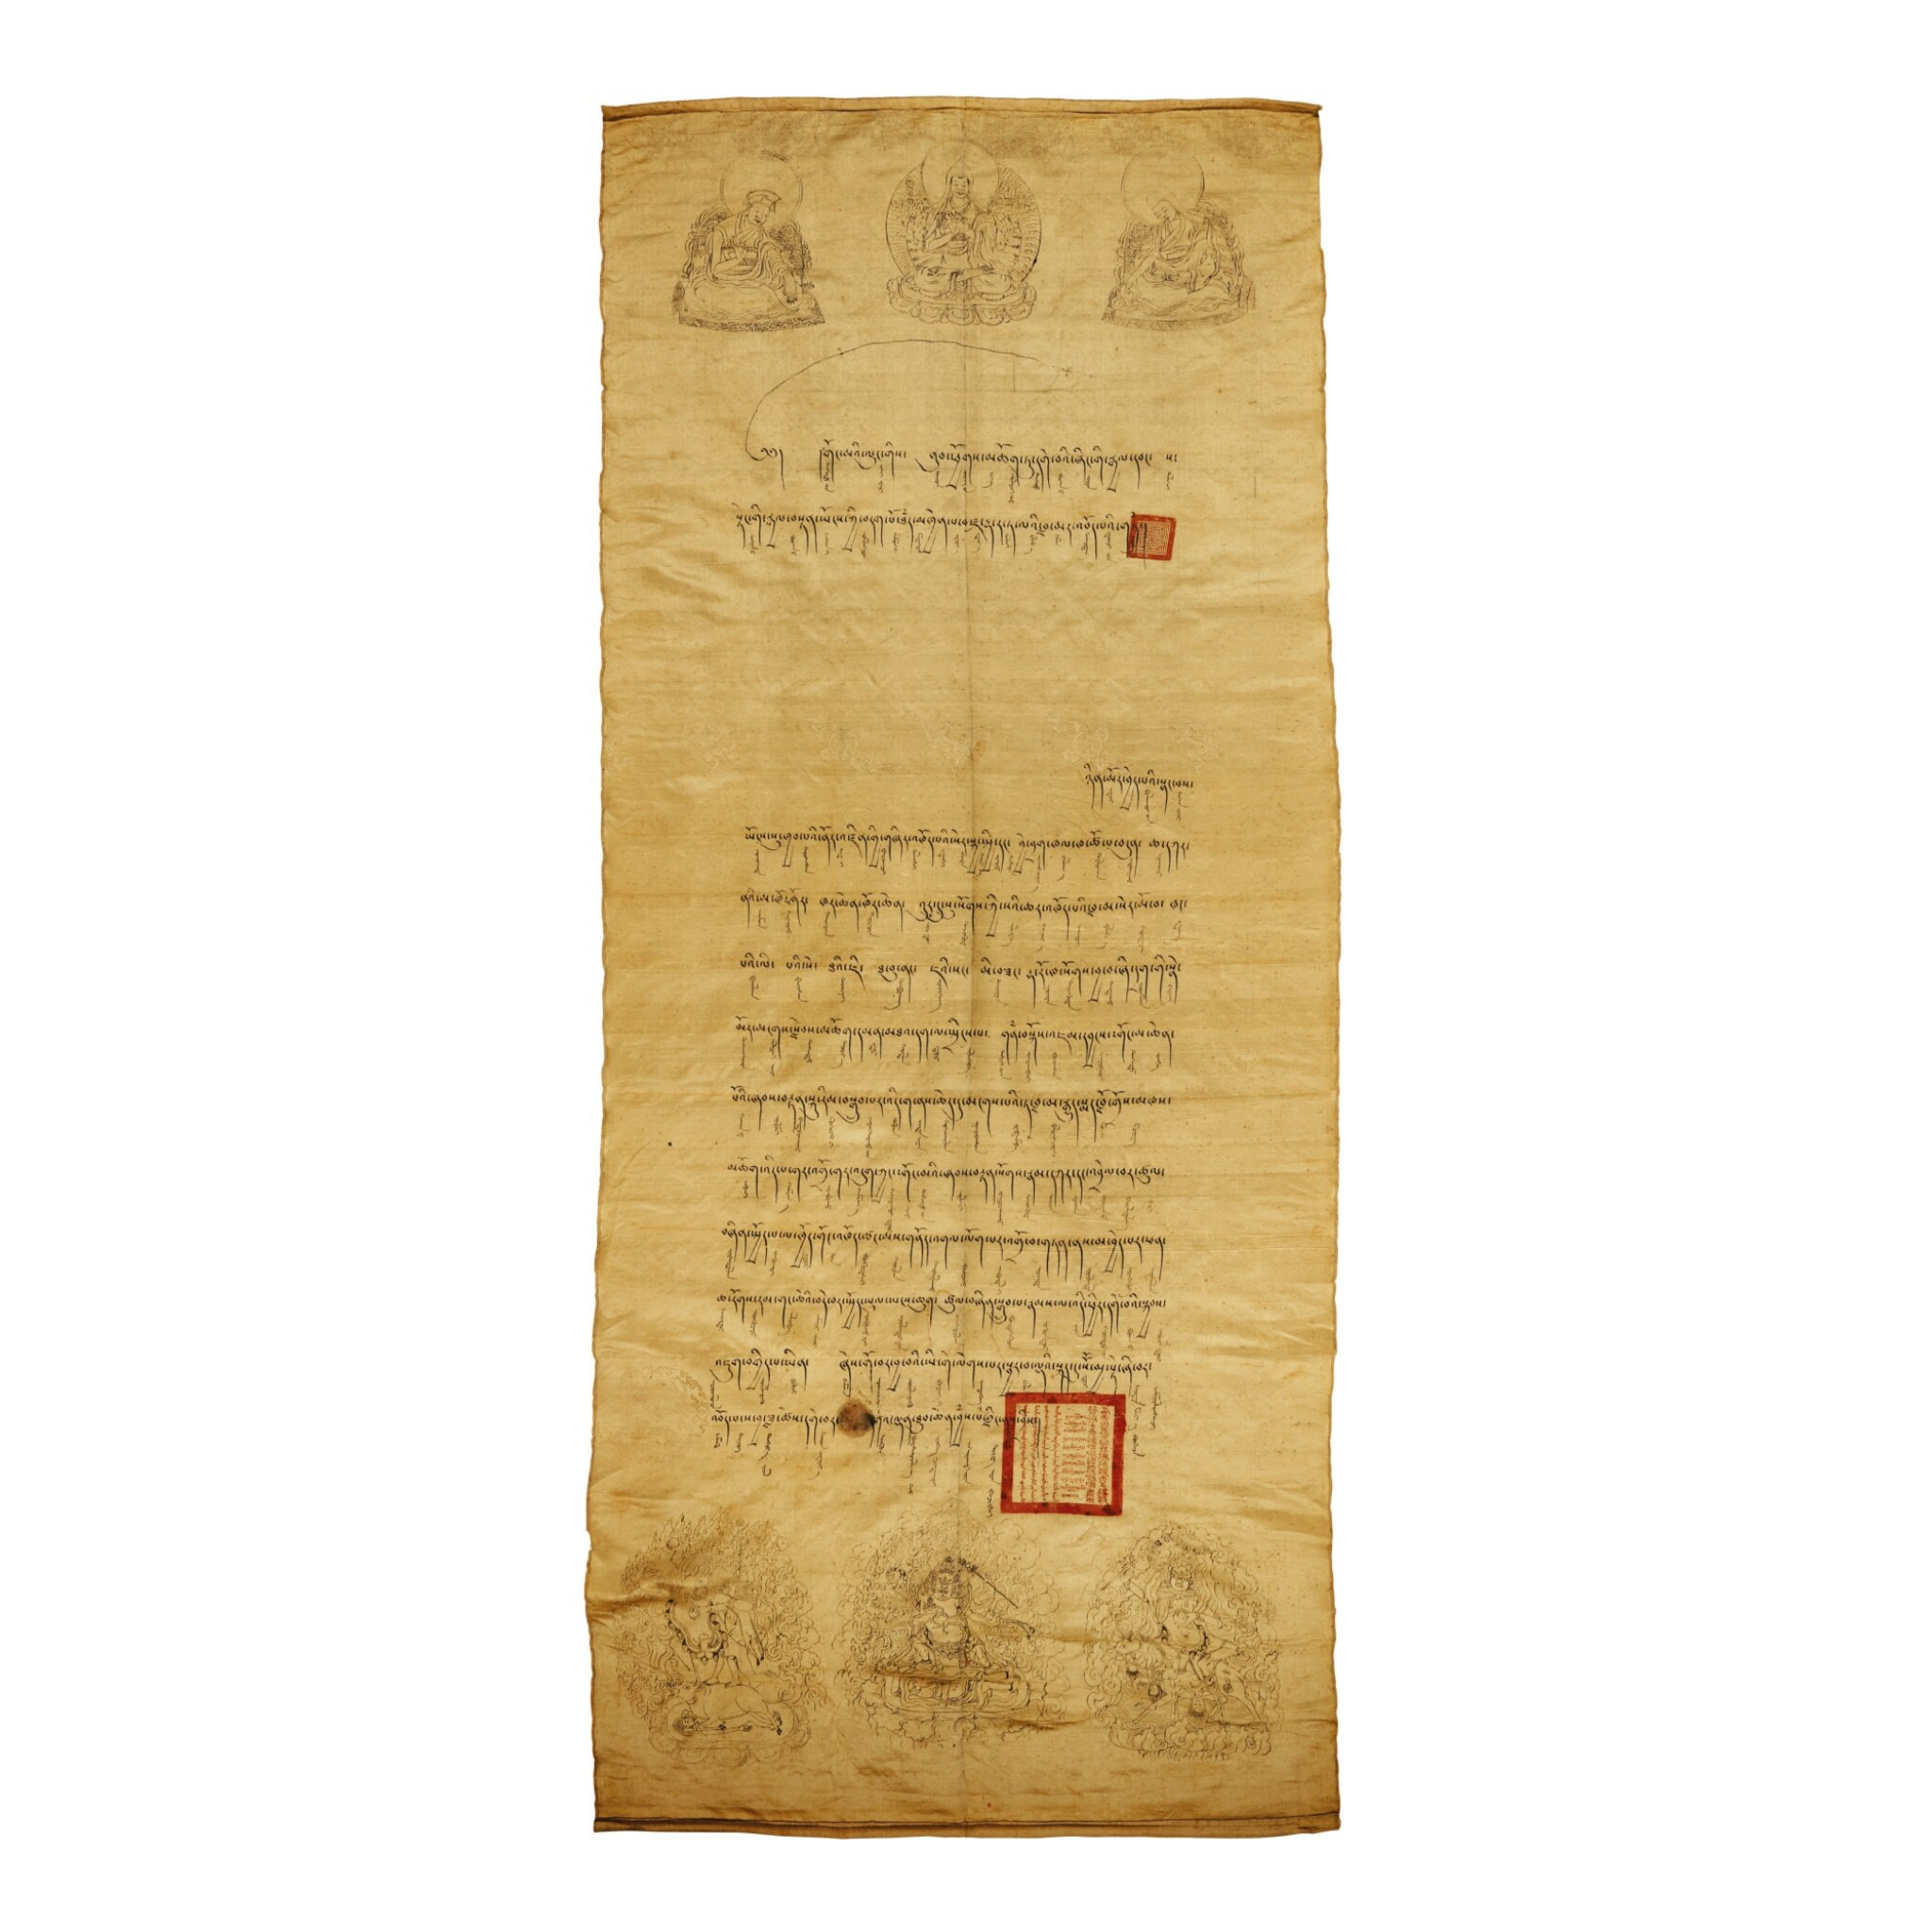 View 1 of Lot 619. A VERY RARE TIBETAN TRAVEL PERMIT ISSUED BY THE SEVENTH DALAI LAMA,  QING DYNASTY, YONGZHENG PERIOD, DATED EARTH-BIRD YEAR, CORRESPONDING TO 1729.